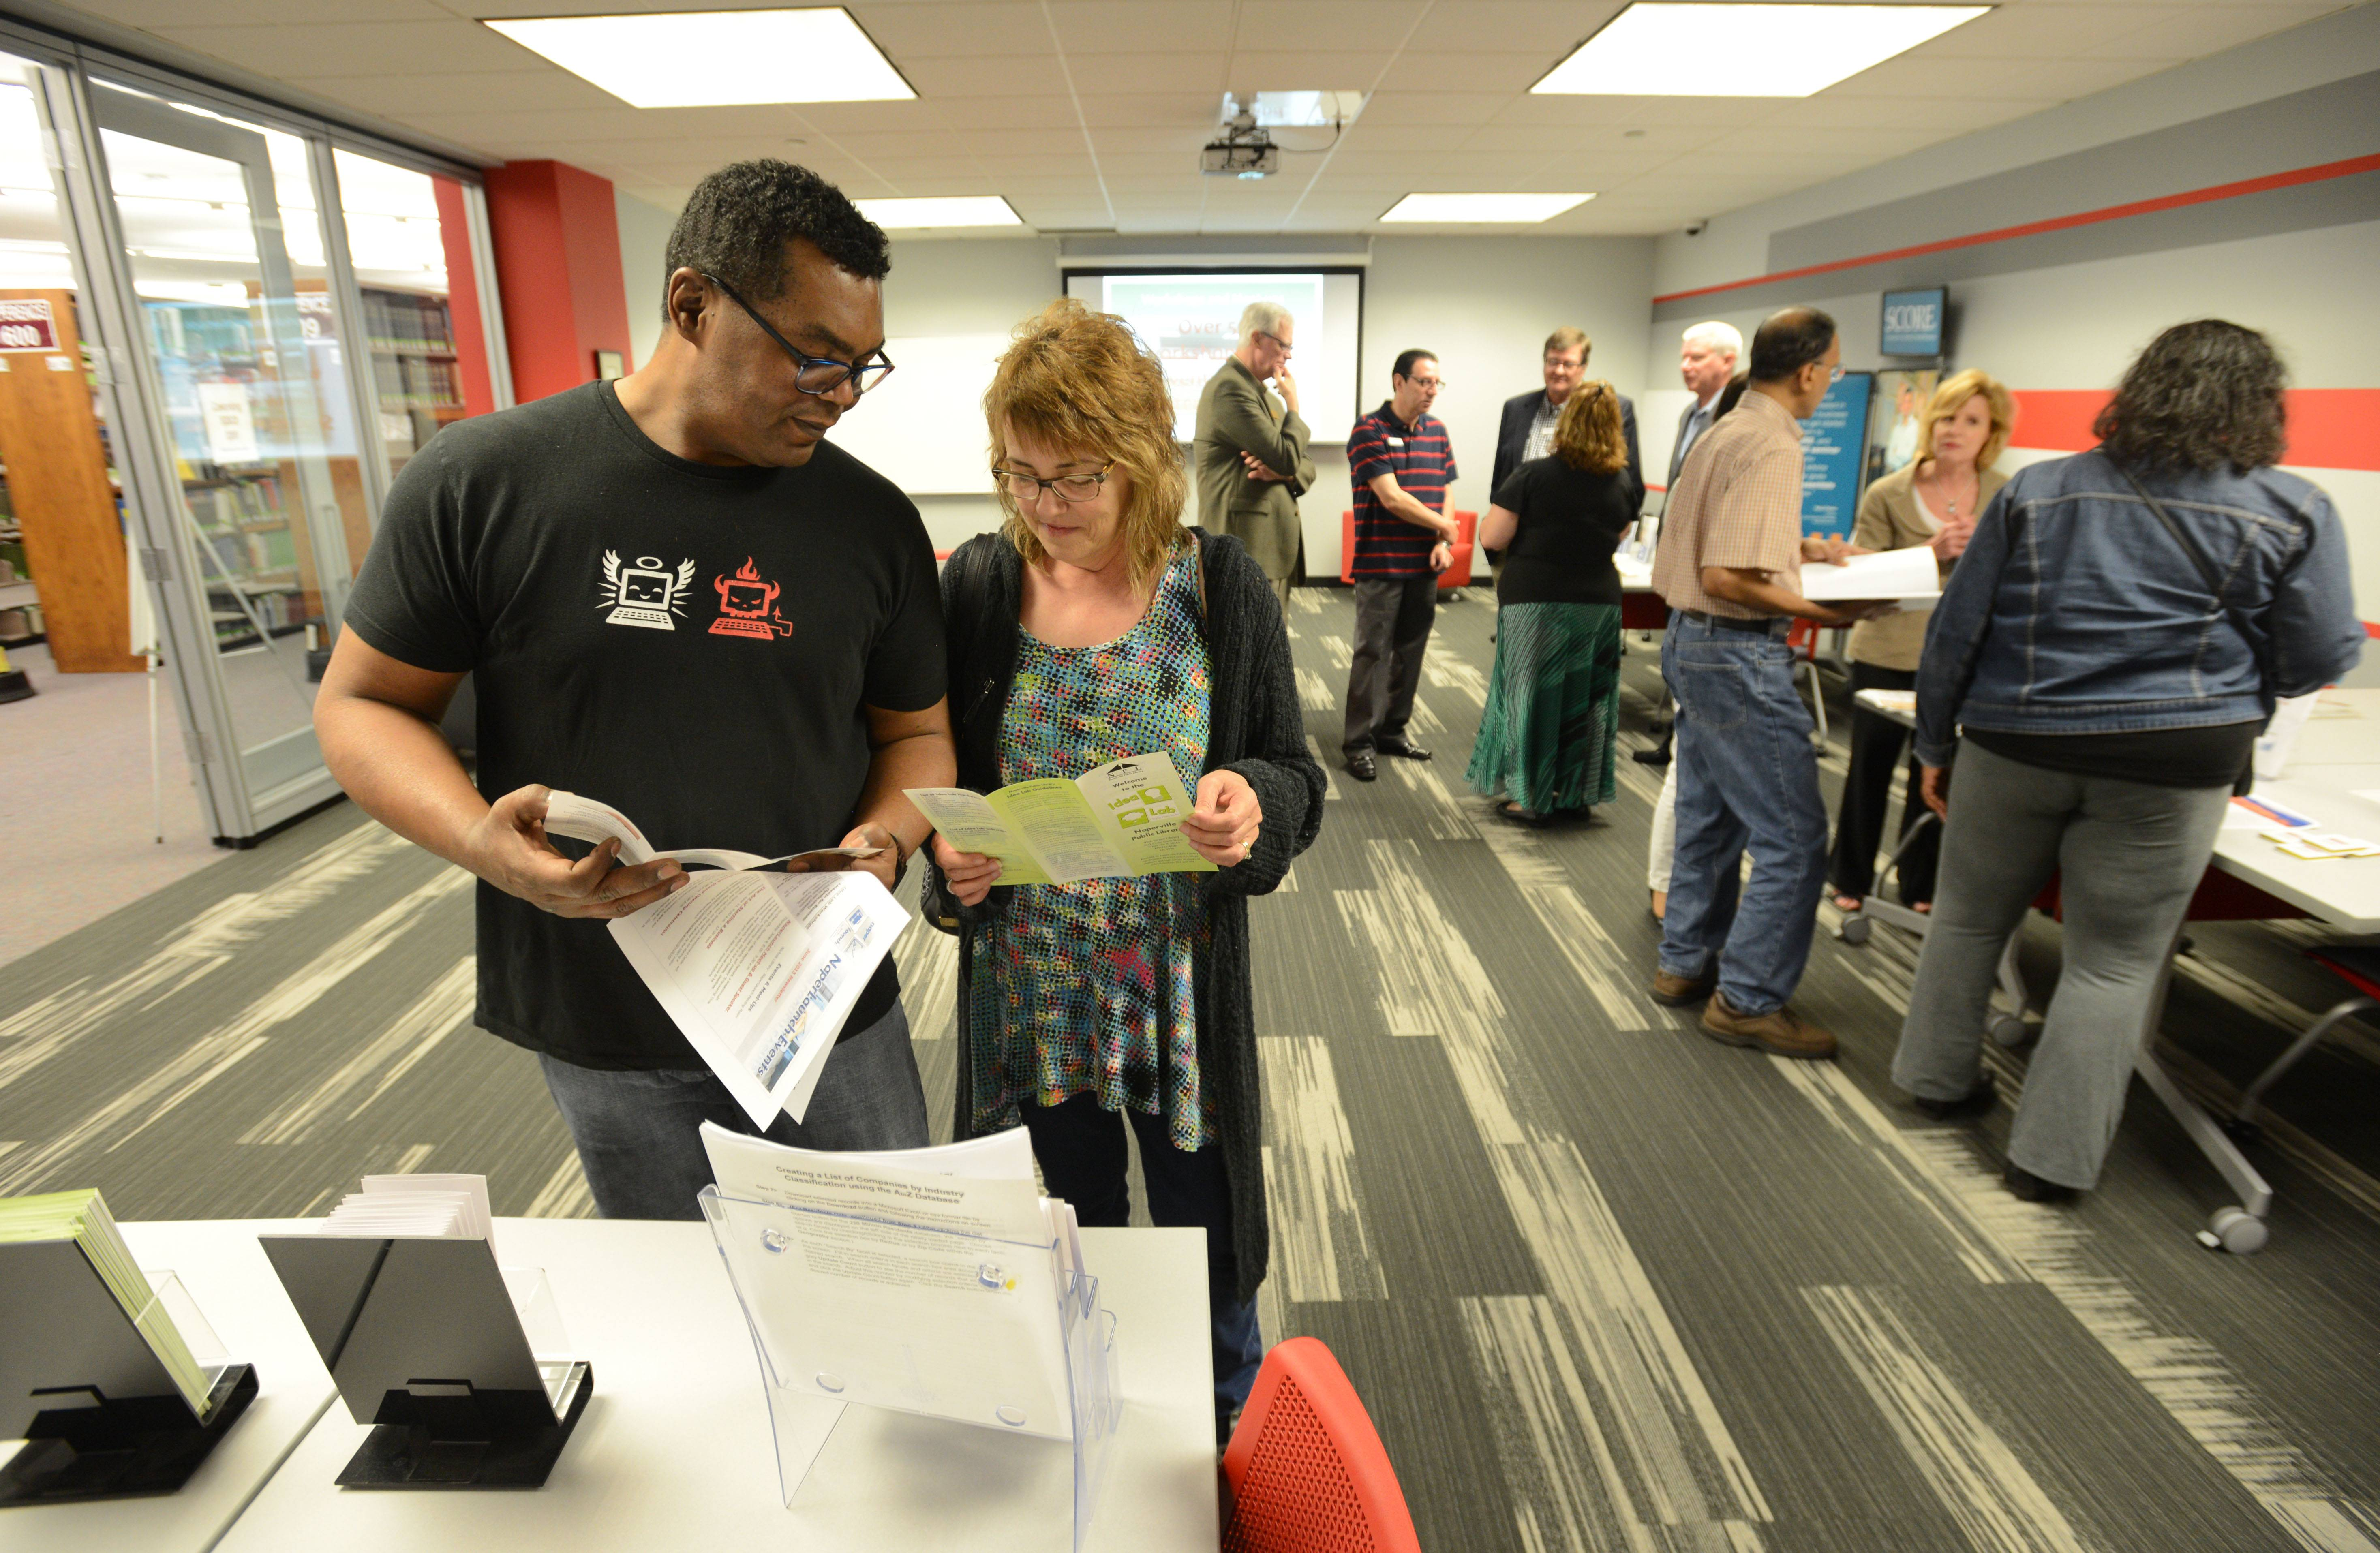 Jose and Janet Osorio of Naperville browse materials at the NaperLaunch business startup center, which hosted a grand opening Wednesday at Nichols Library in downtown Naperville. Janet is contemplating starting a business.